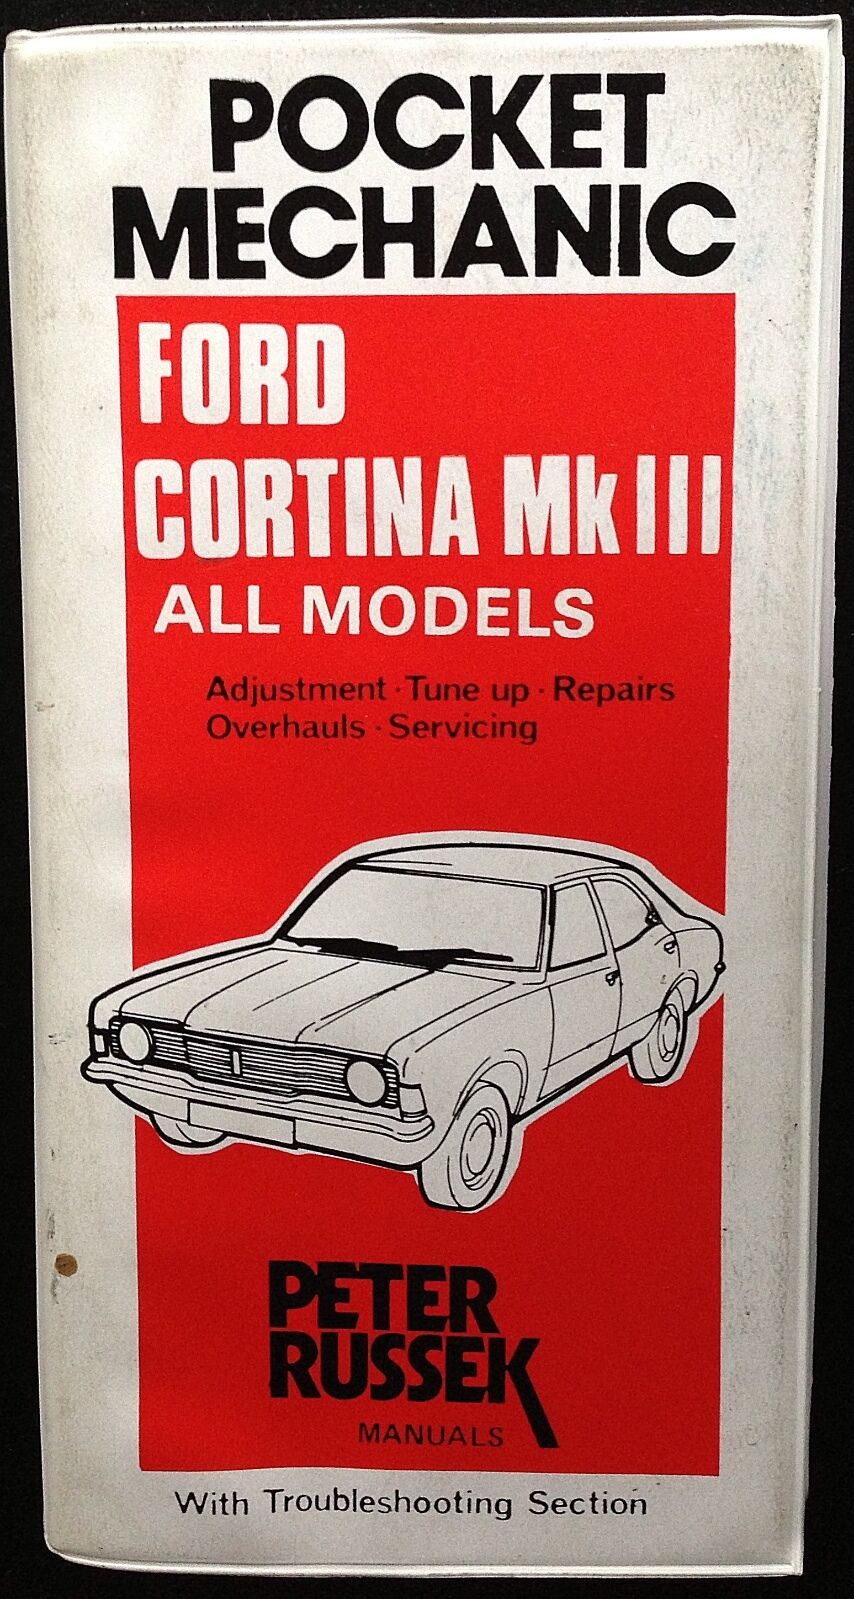 1970 1971 1972 1973 FORD CORTINA MKIII MK3 REPAIR MANUAL by PETER RUSSEK 1  of 2Only 1 available See More